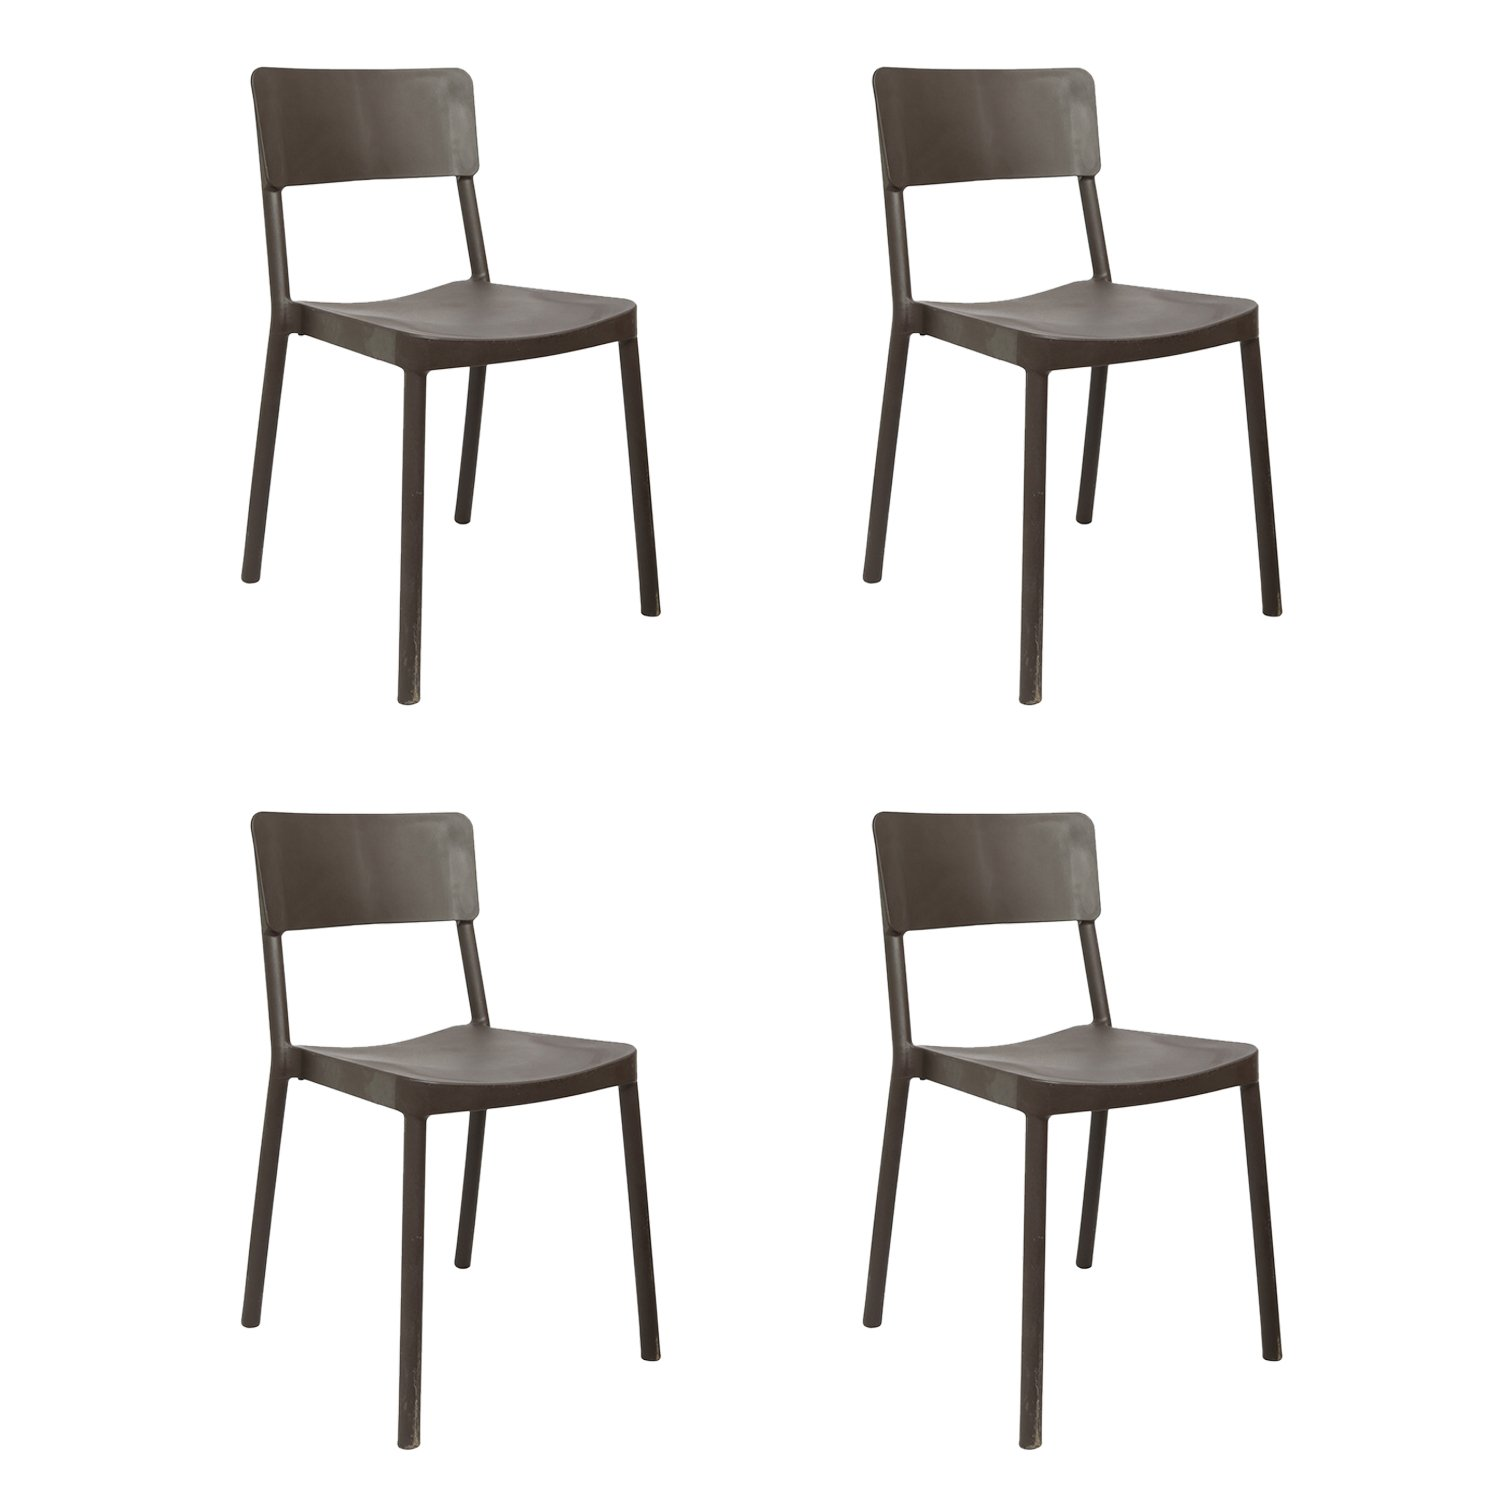 Cello Eskimo Cafeteria Set of 4 Chairs (Brown)